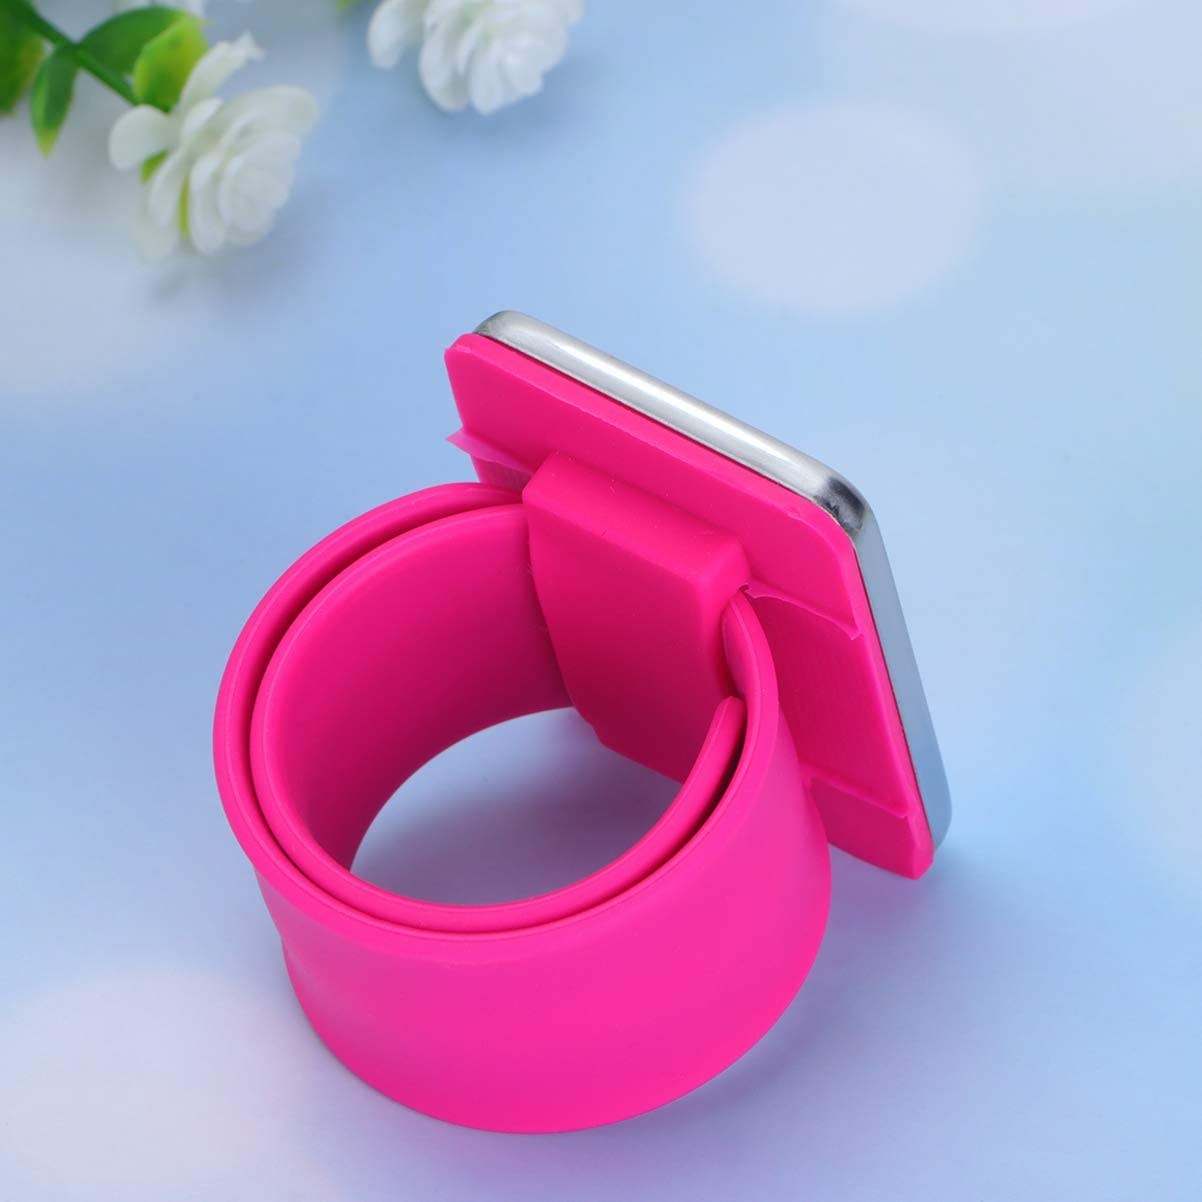 HEALLILY 2pcs Magnetic Wrist Pin Holder Magnetic Sewing Pincushion Slap Bracelets for Sewing Quilting Hair Bobby Pins Sewing Needles